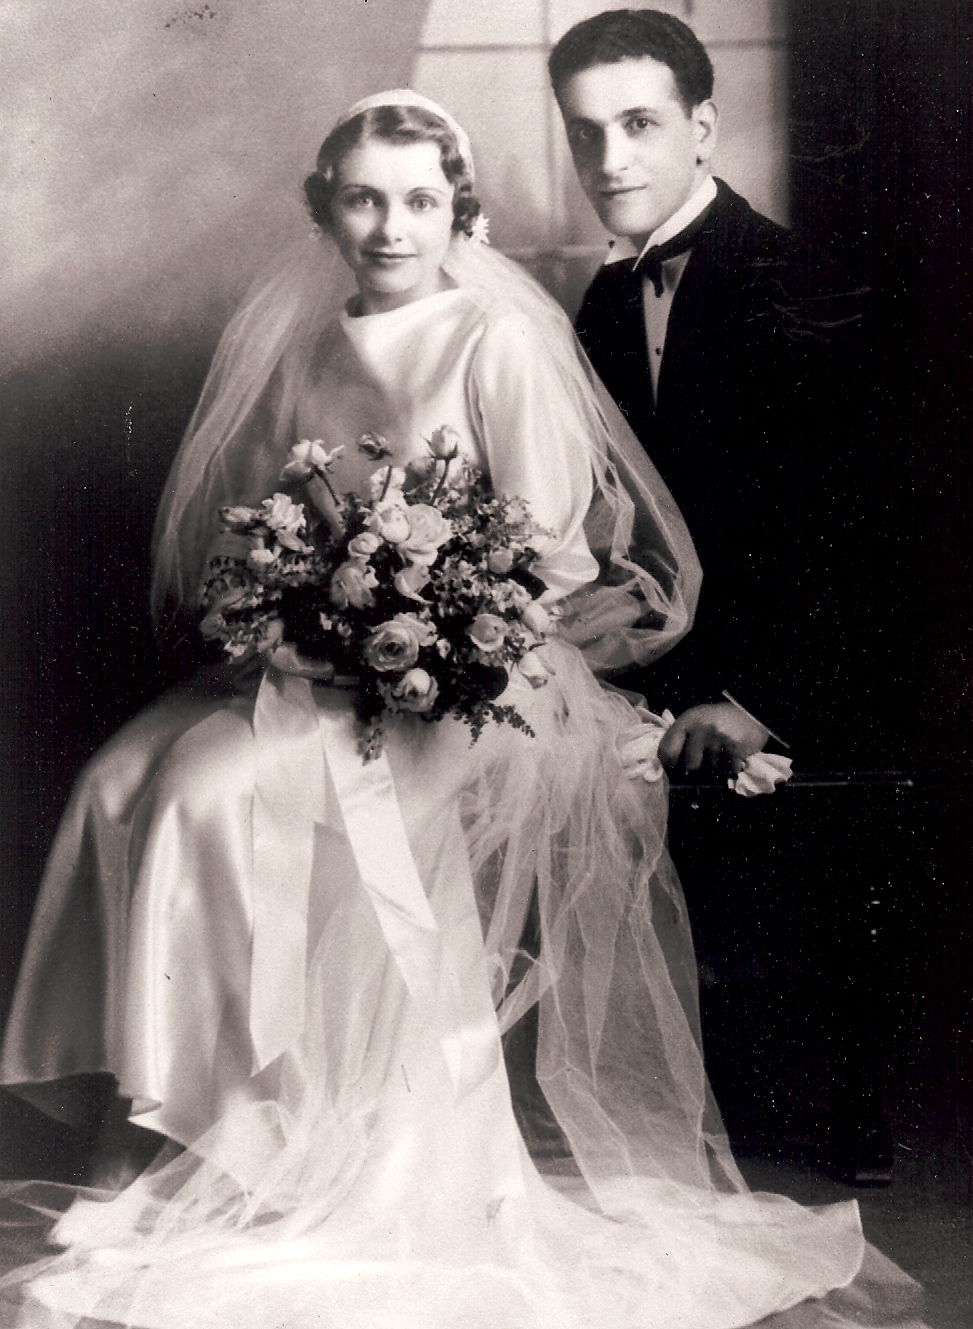 Sam and Betty Alhadeff wedding photo